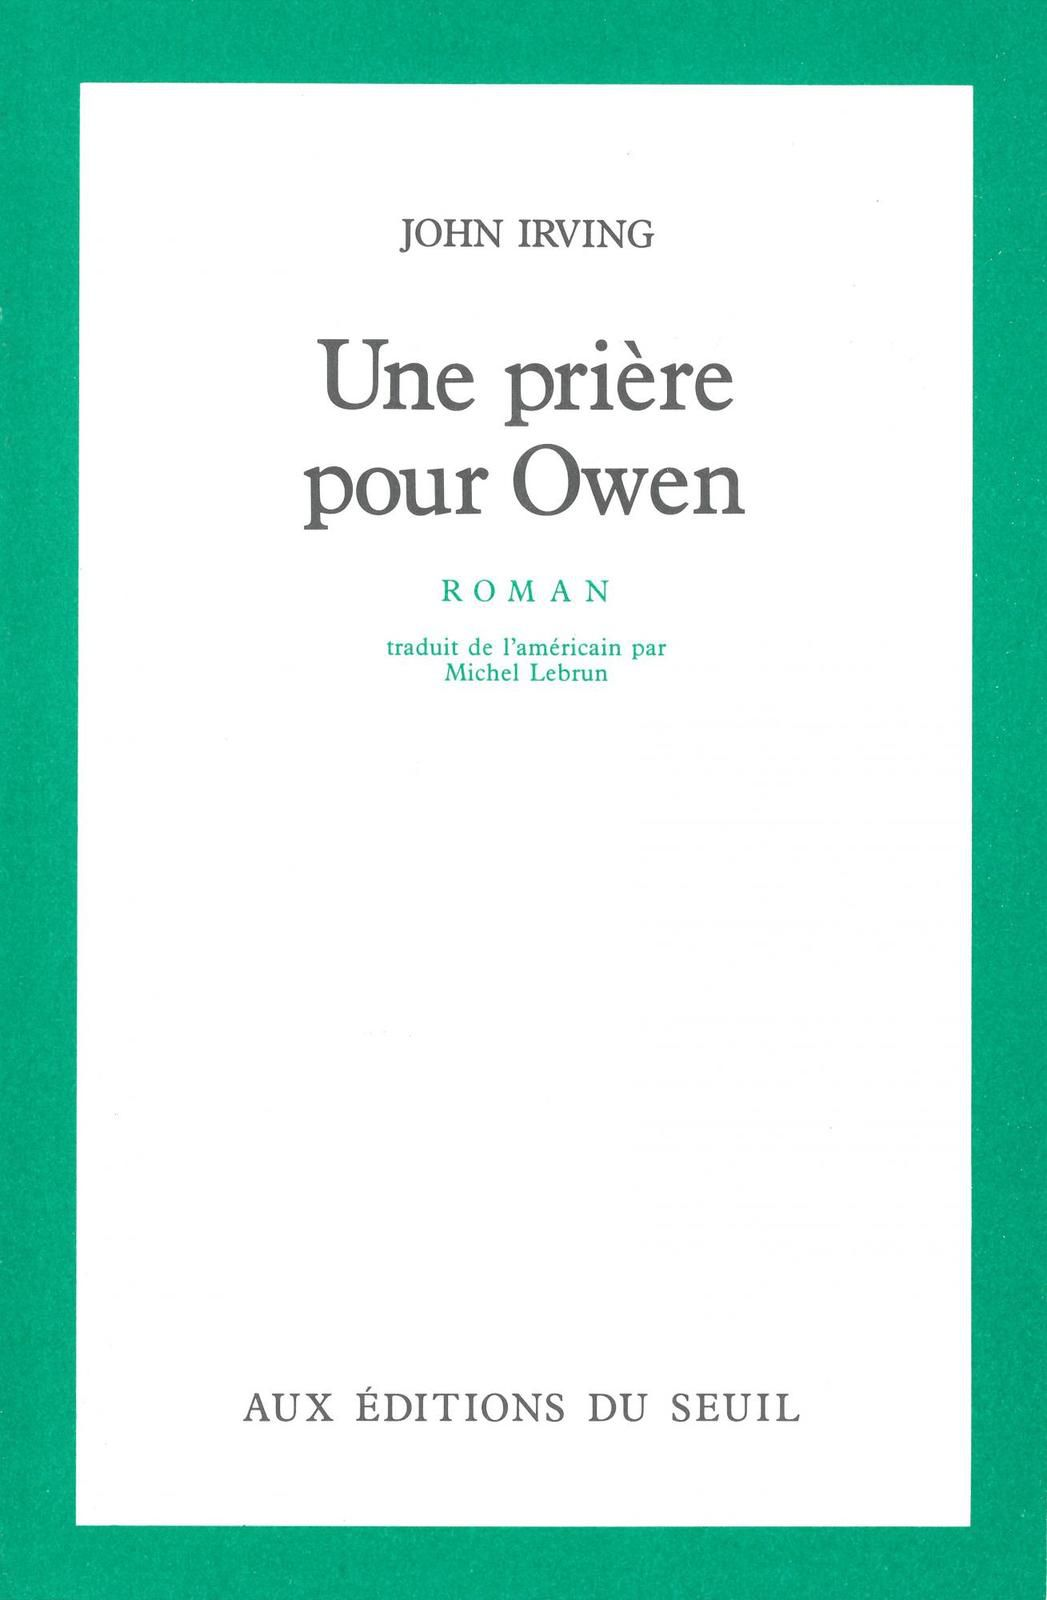 Une prière pour Owen - John IRVING (A Prayer for Owen Meany, 1989), traduction de Michel LEBRUN, Seuil, 1989, 576 pages